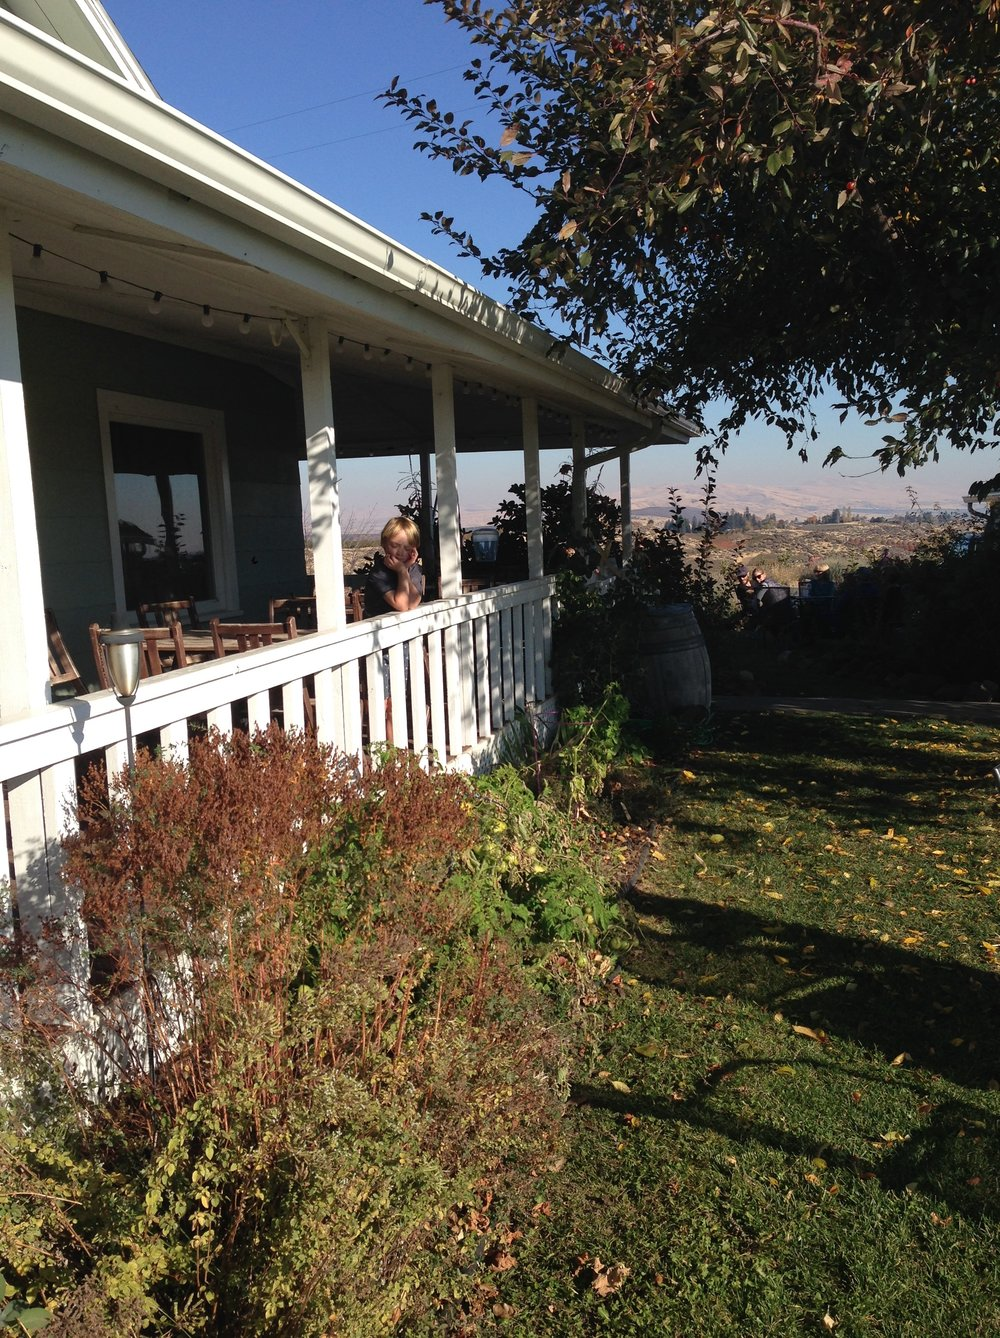 The dreamy covered porch of the Wilridge Winery farmhouse outside Yakima, WA.